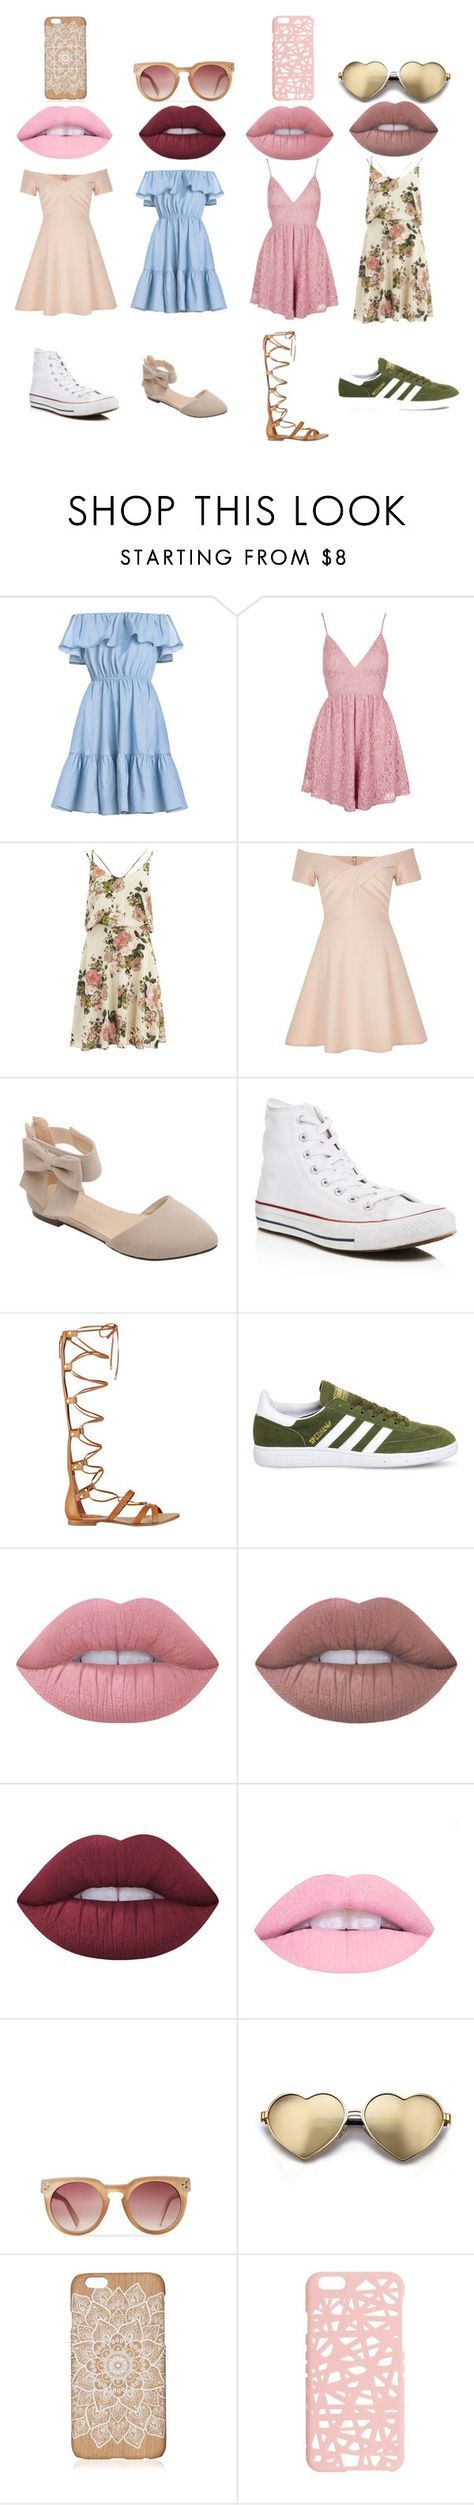 OTB 3 by nicolean1029 on Polyvore featuring VILA, River Island, Topshop, GUESS, adidas, Converse, Wildfox, Miss Selfridge and Lime Crime